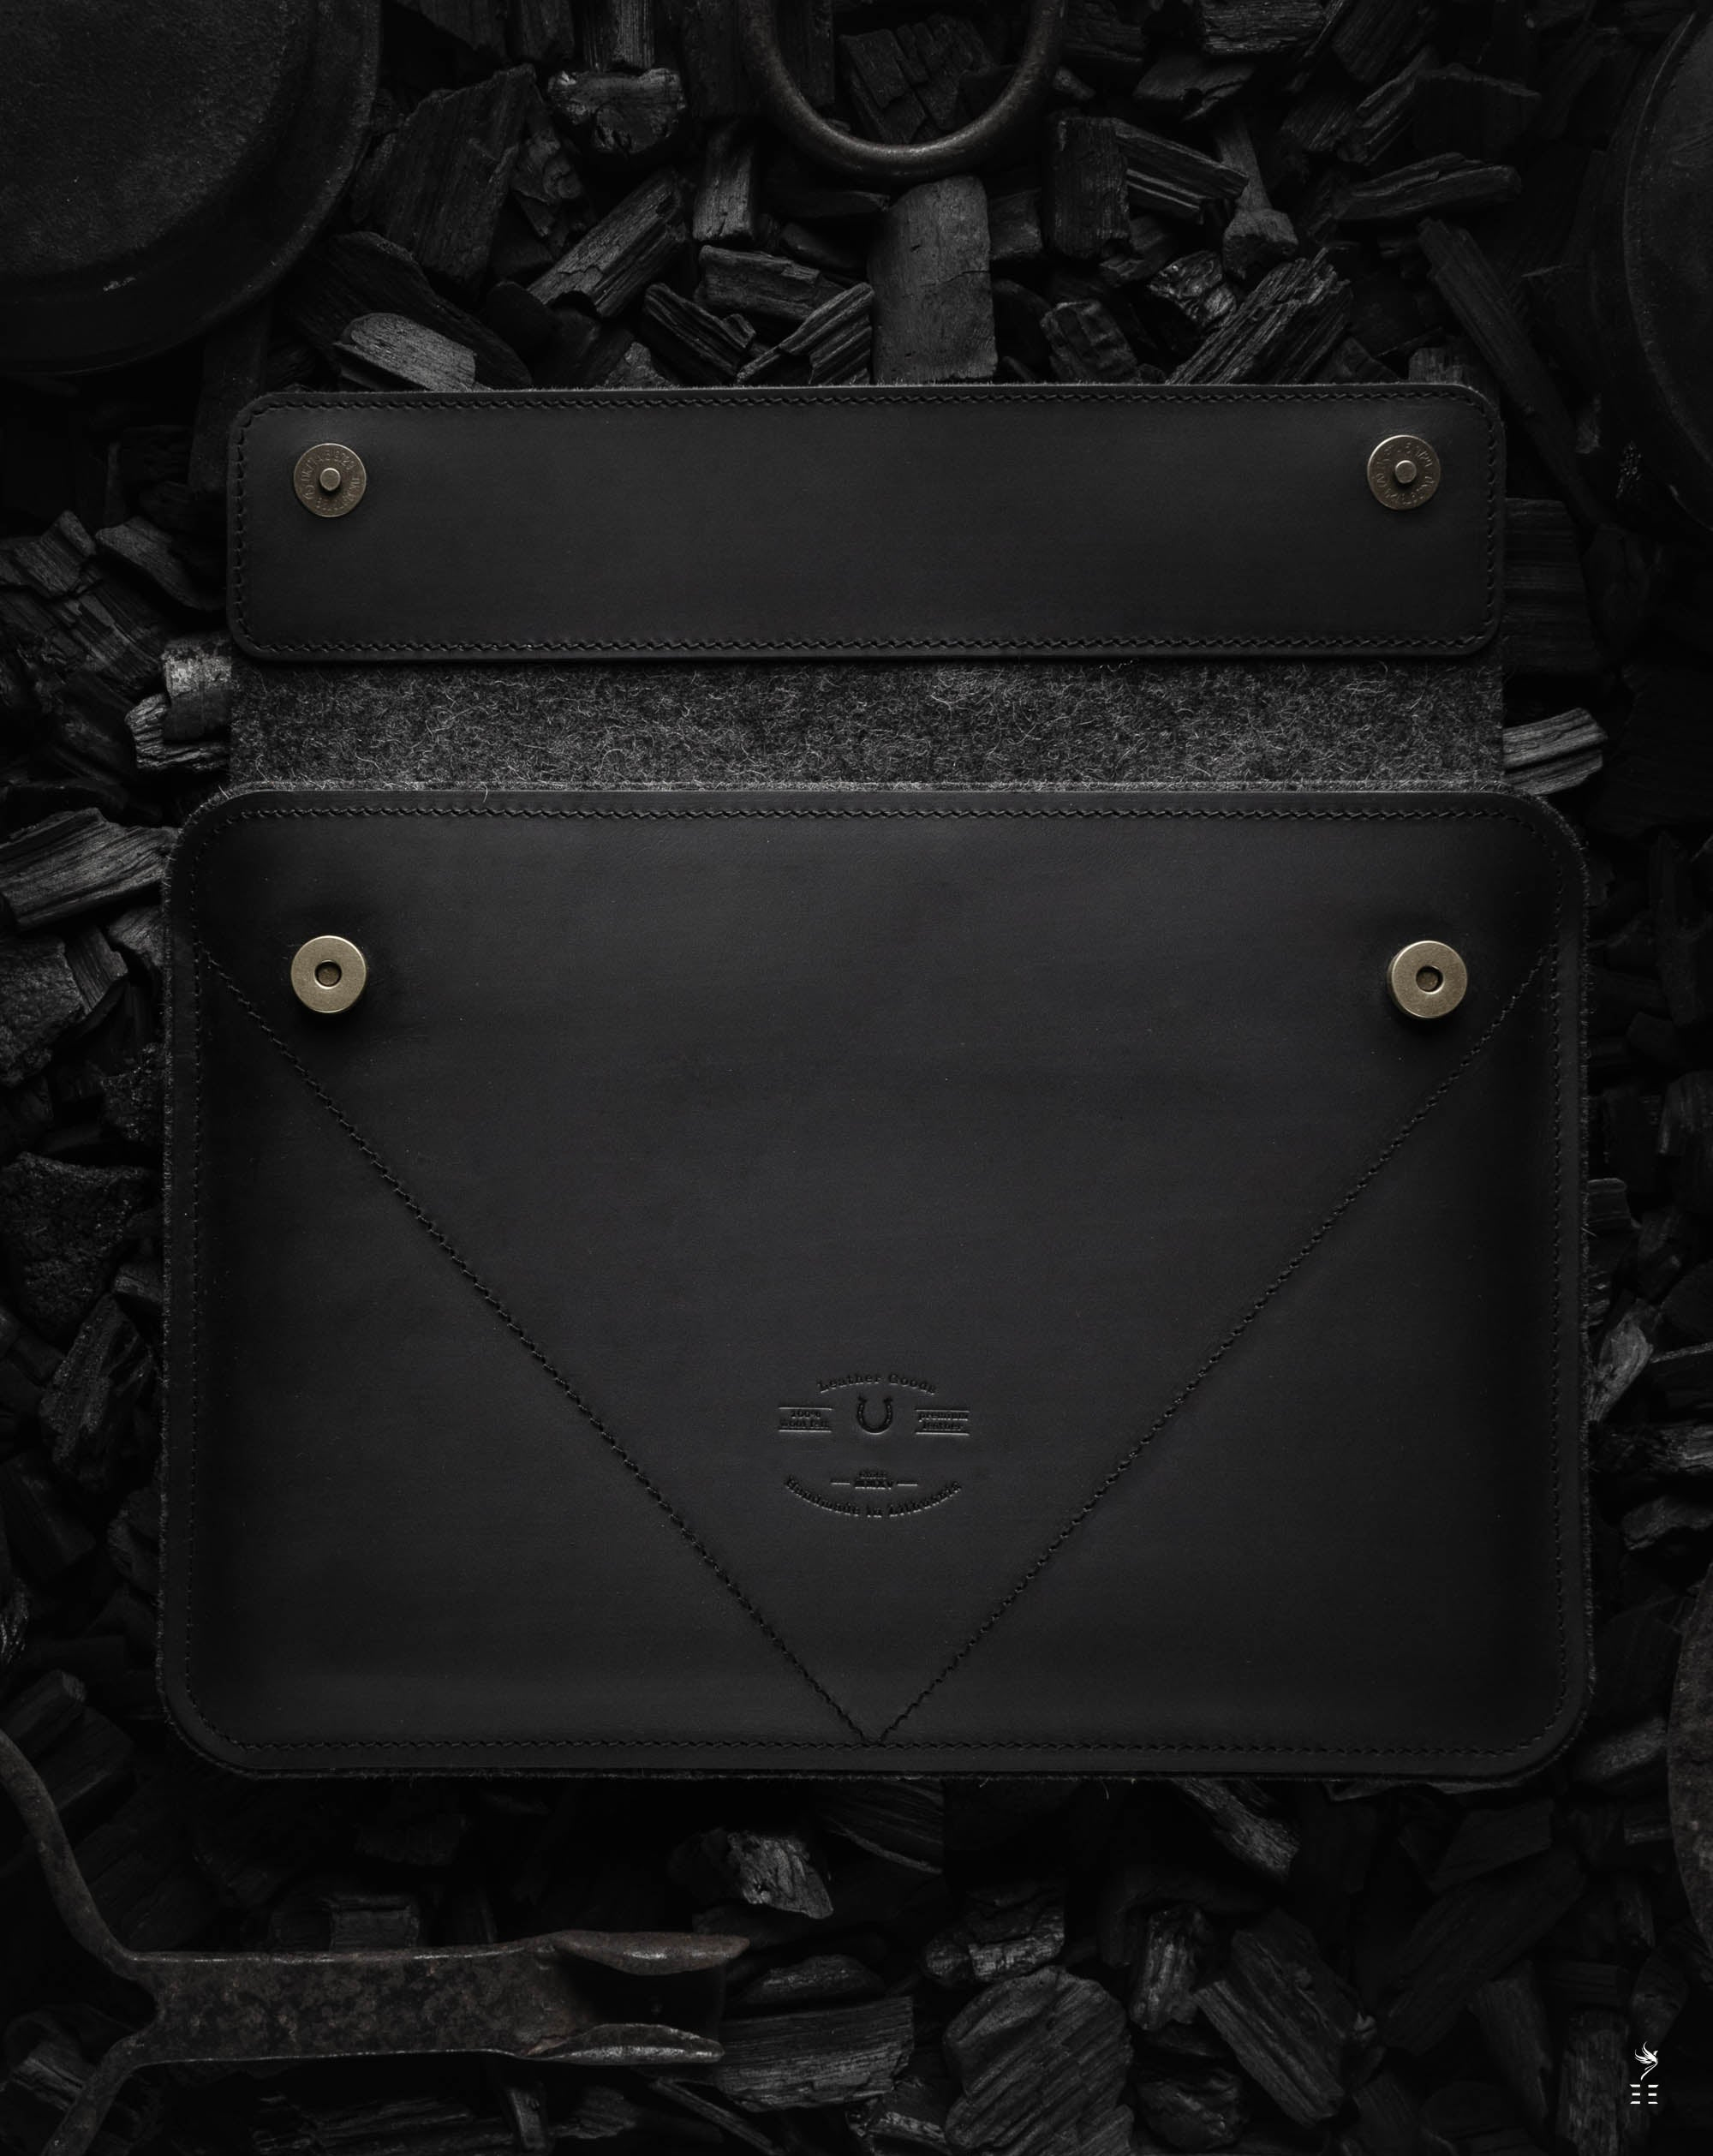 Étui en cuir | MacBook Pro/Air | Anthracite